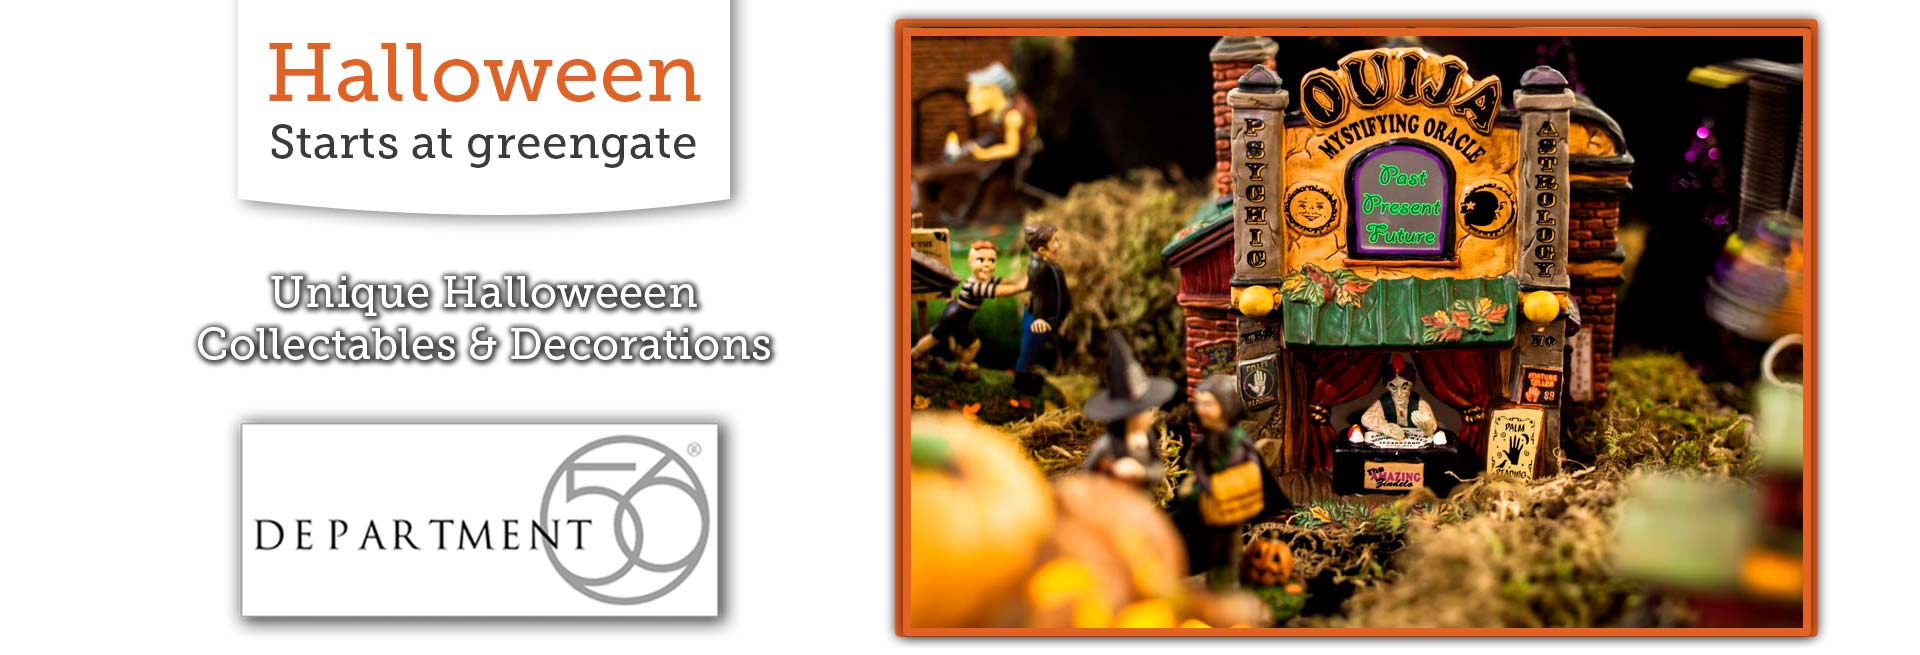 greengate's D56 Halloween decor is in store